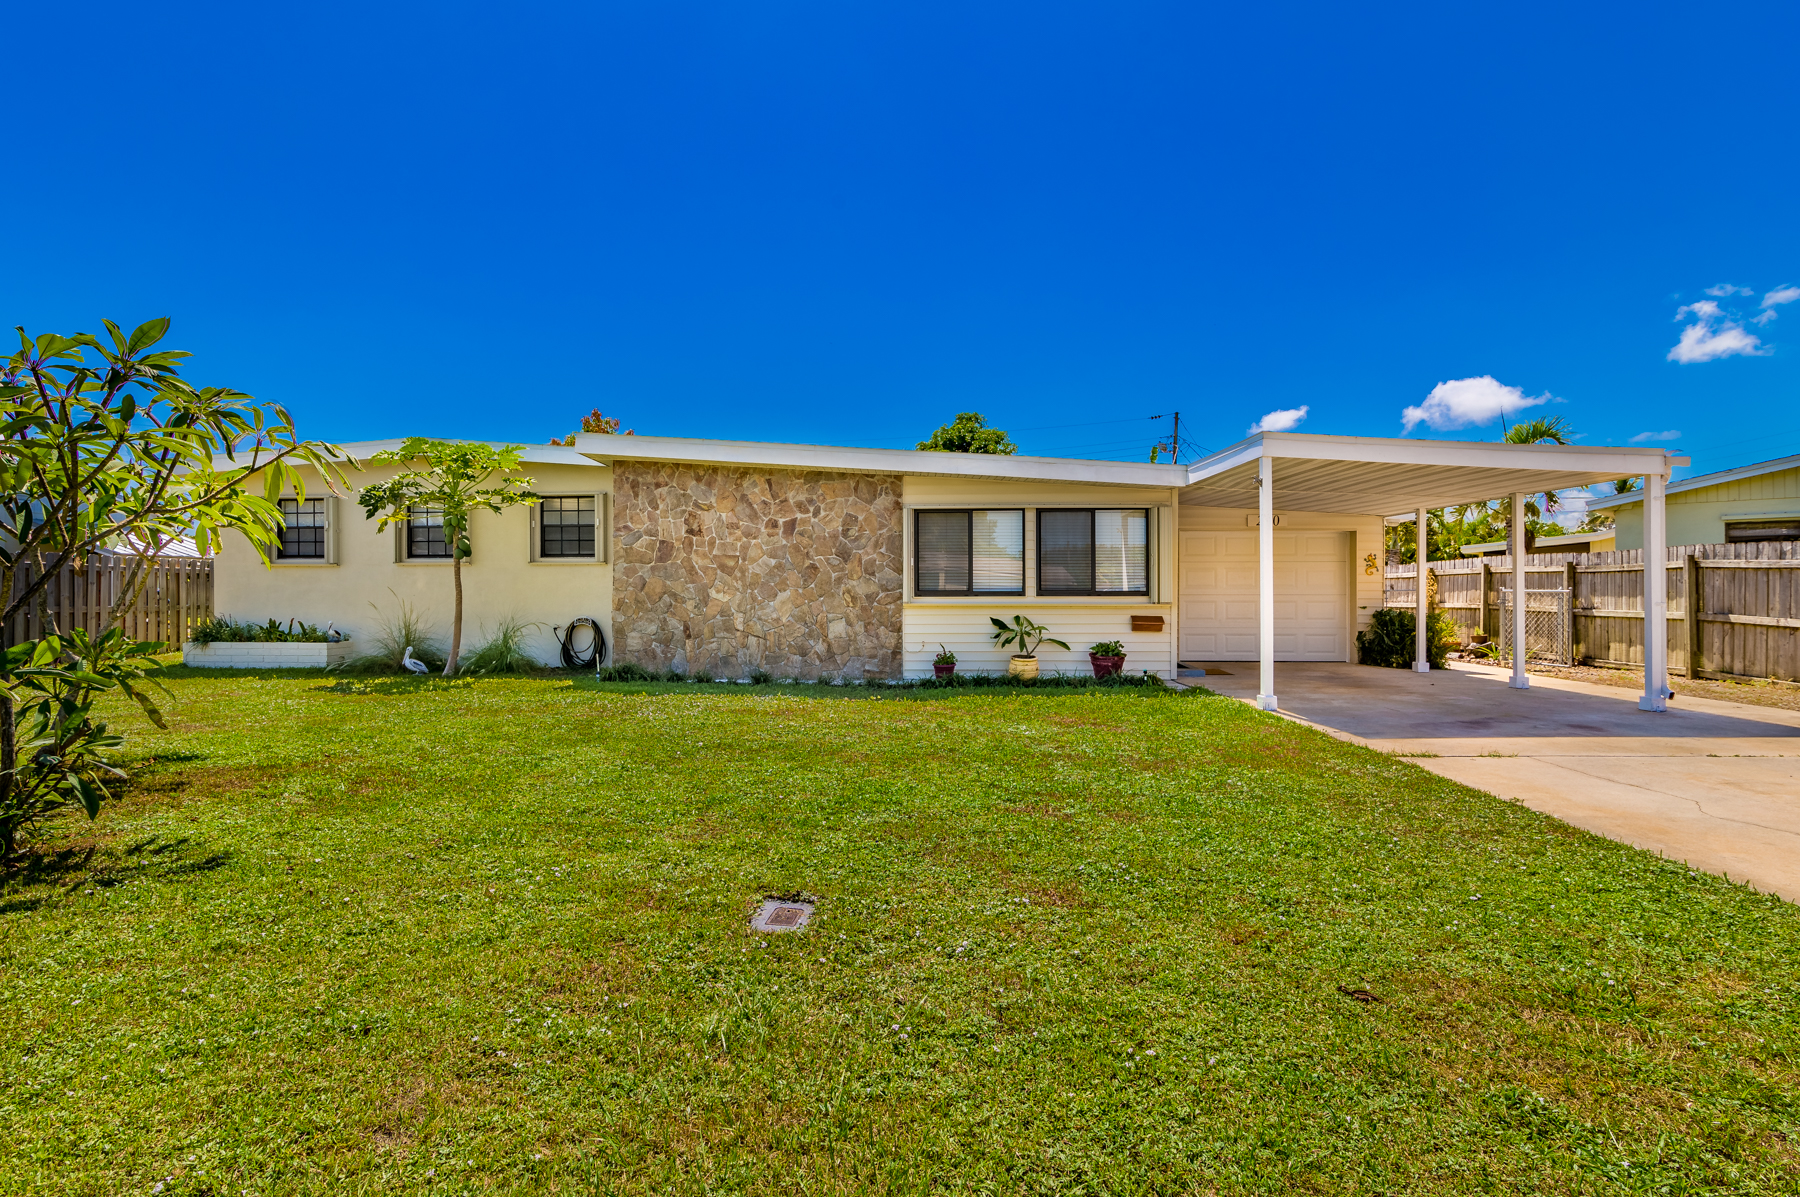 Single Family Home for Sale at Charming Home in South Patrick Shores 240 NE First Court Satellite Beach, Florida 32937 United States